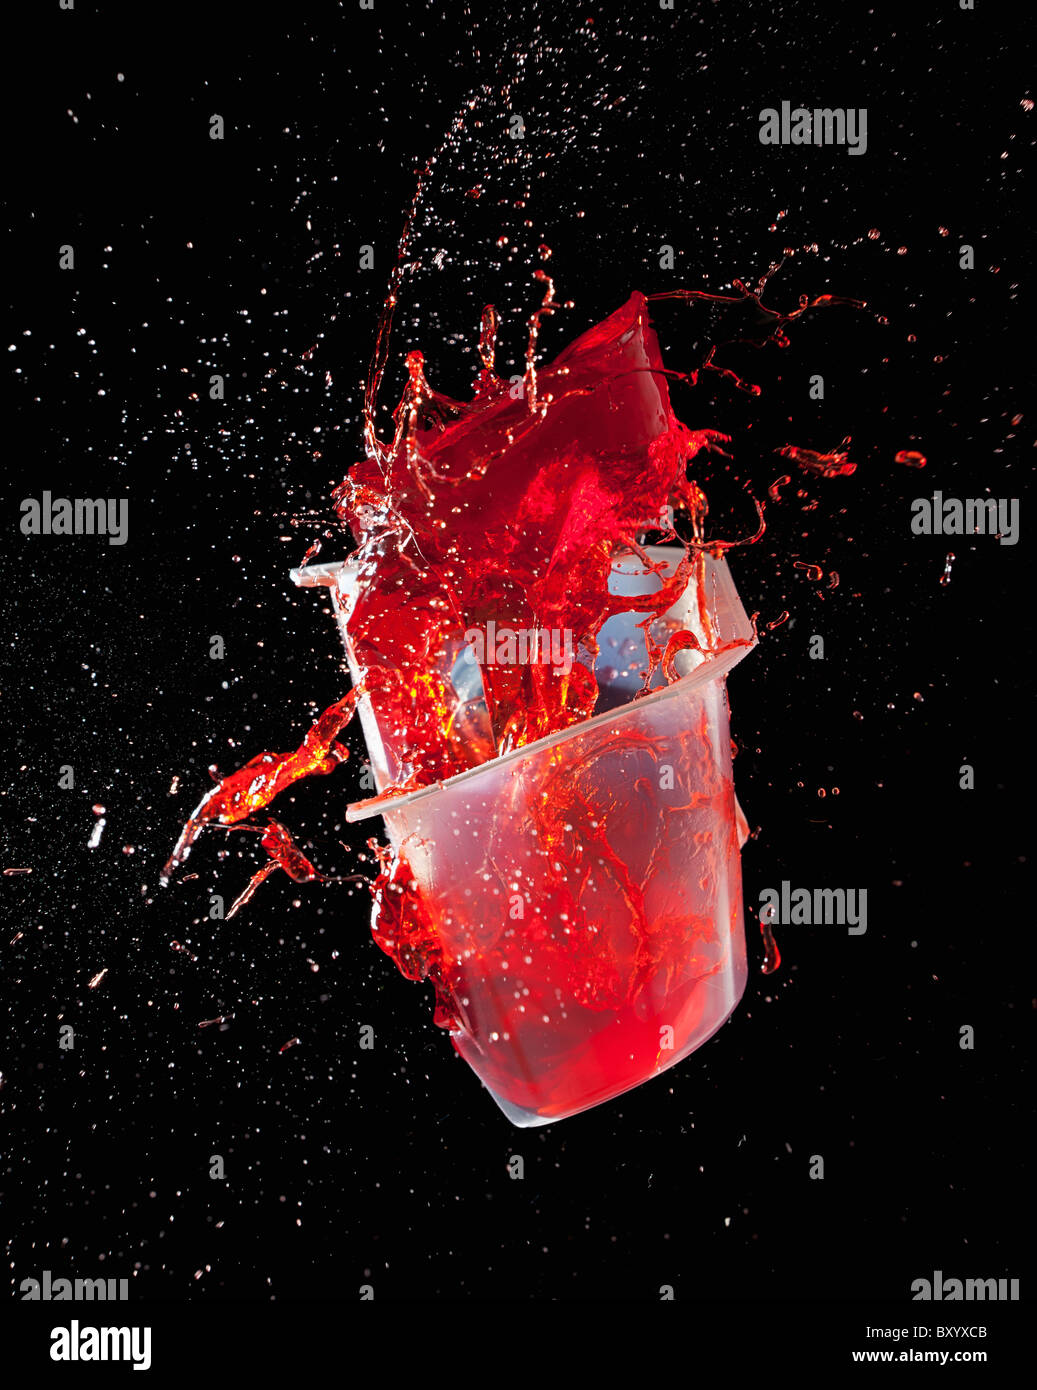 Jelly exploding - Stock Image